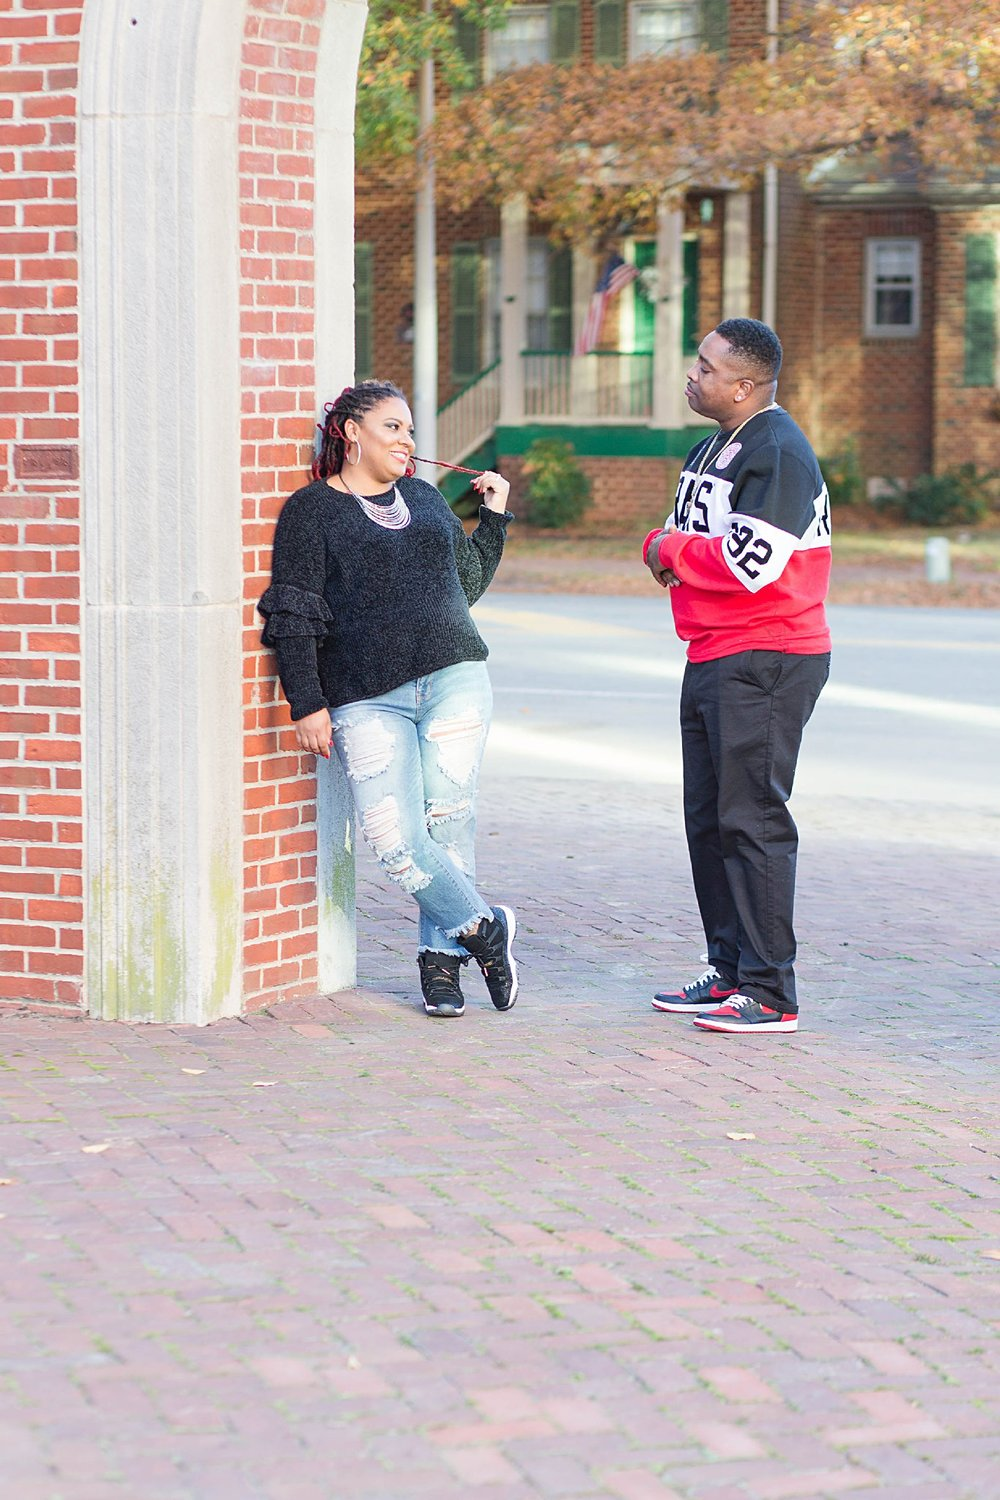 downtown_portsmouth_engagement_session_0469.jpg